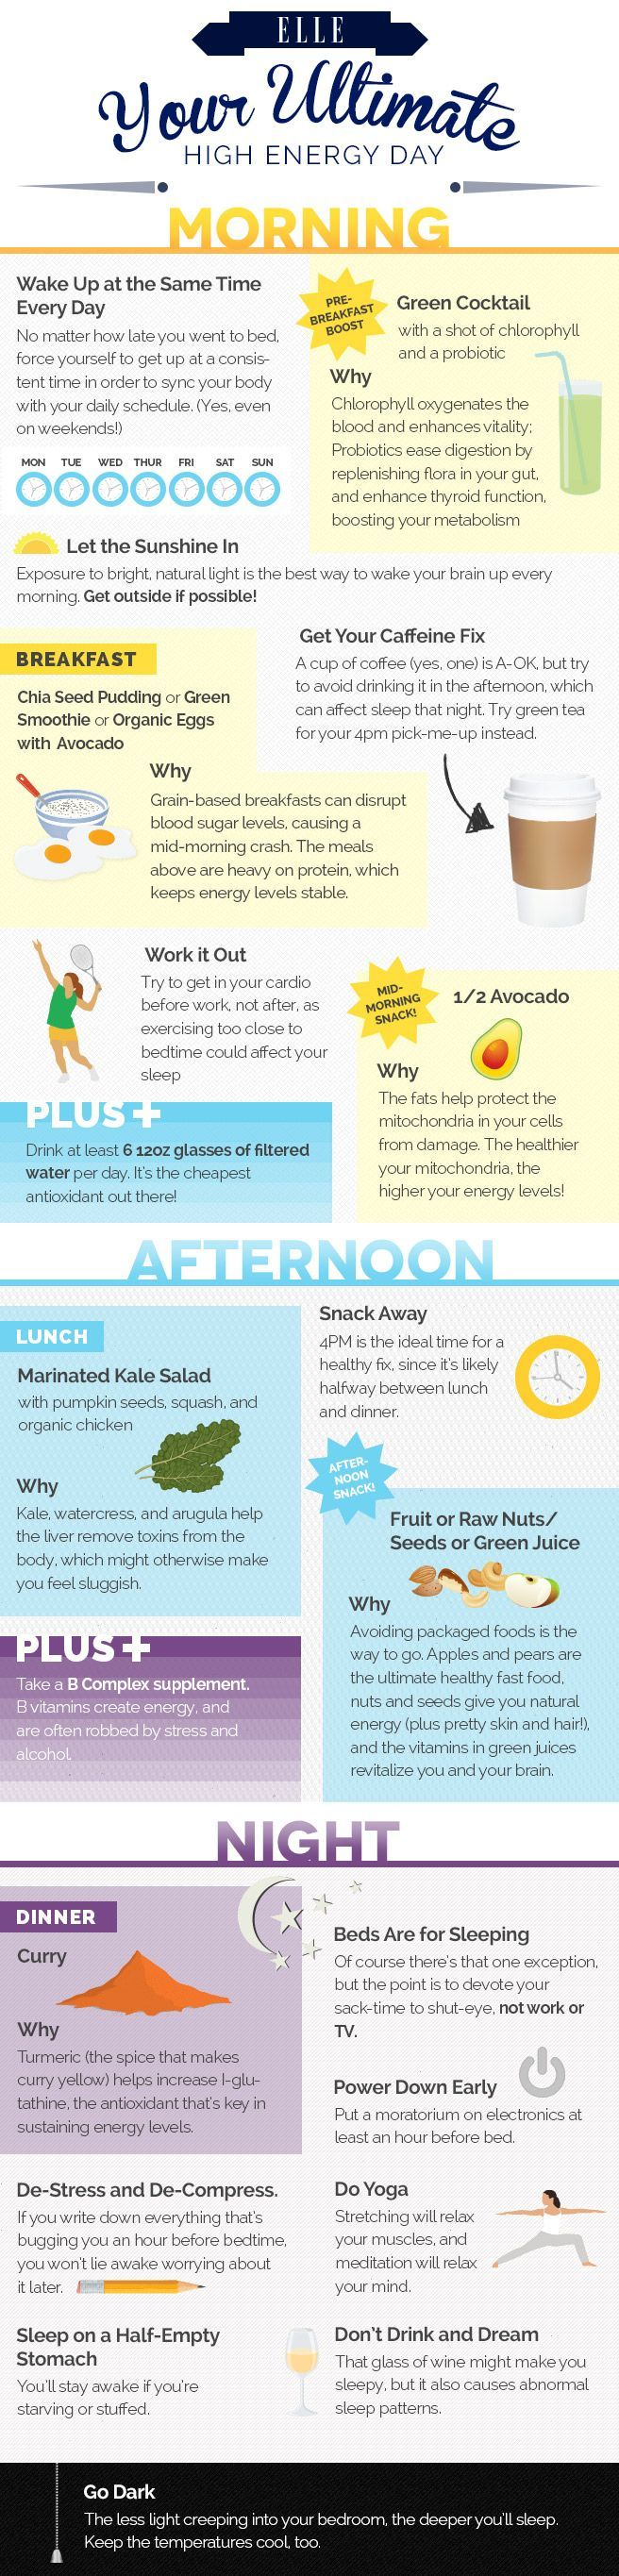 Your Ultimate High Energy Day - How to Get Natural Energy - Elle